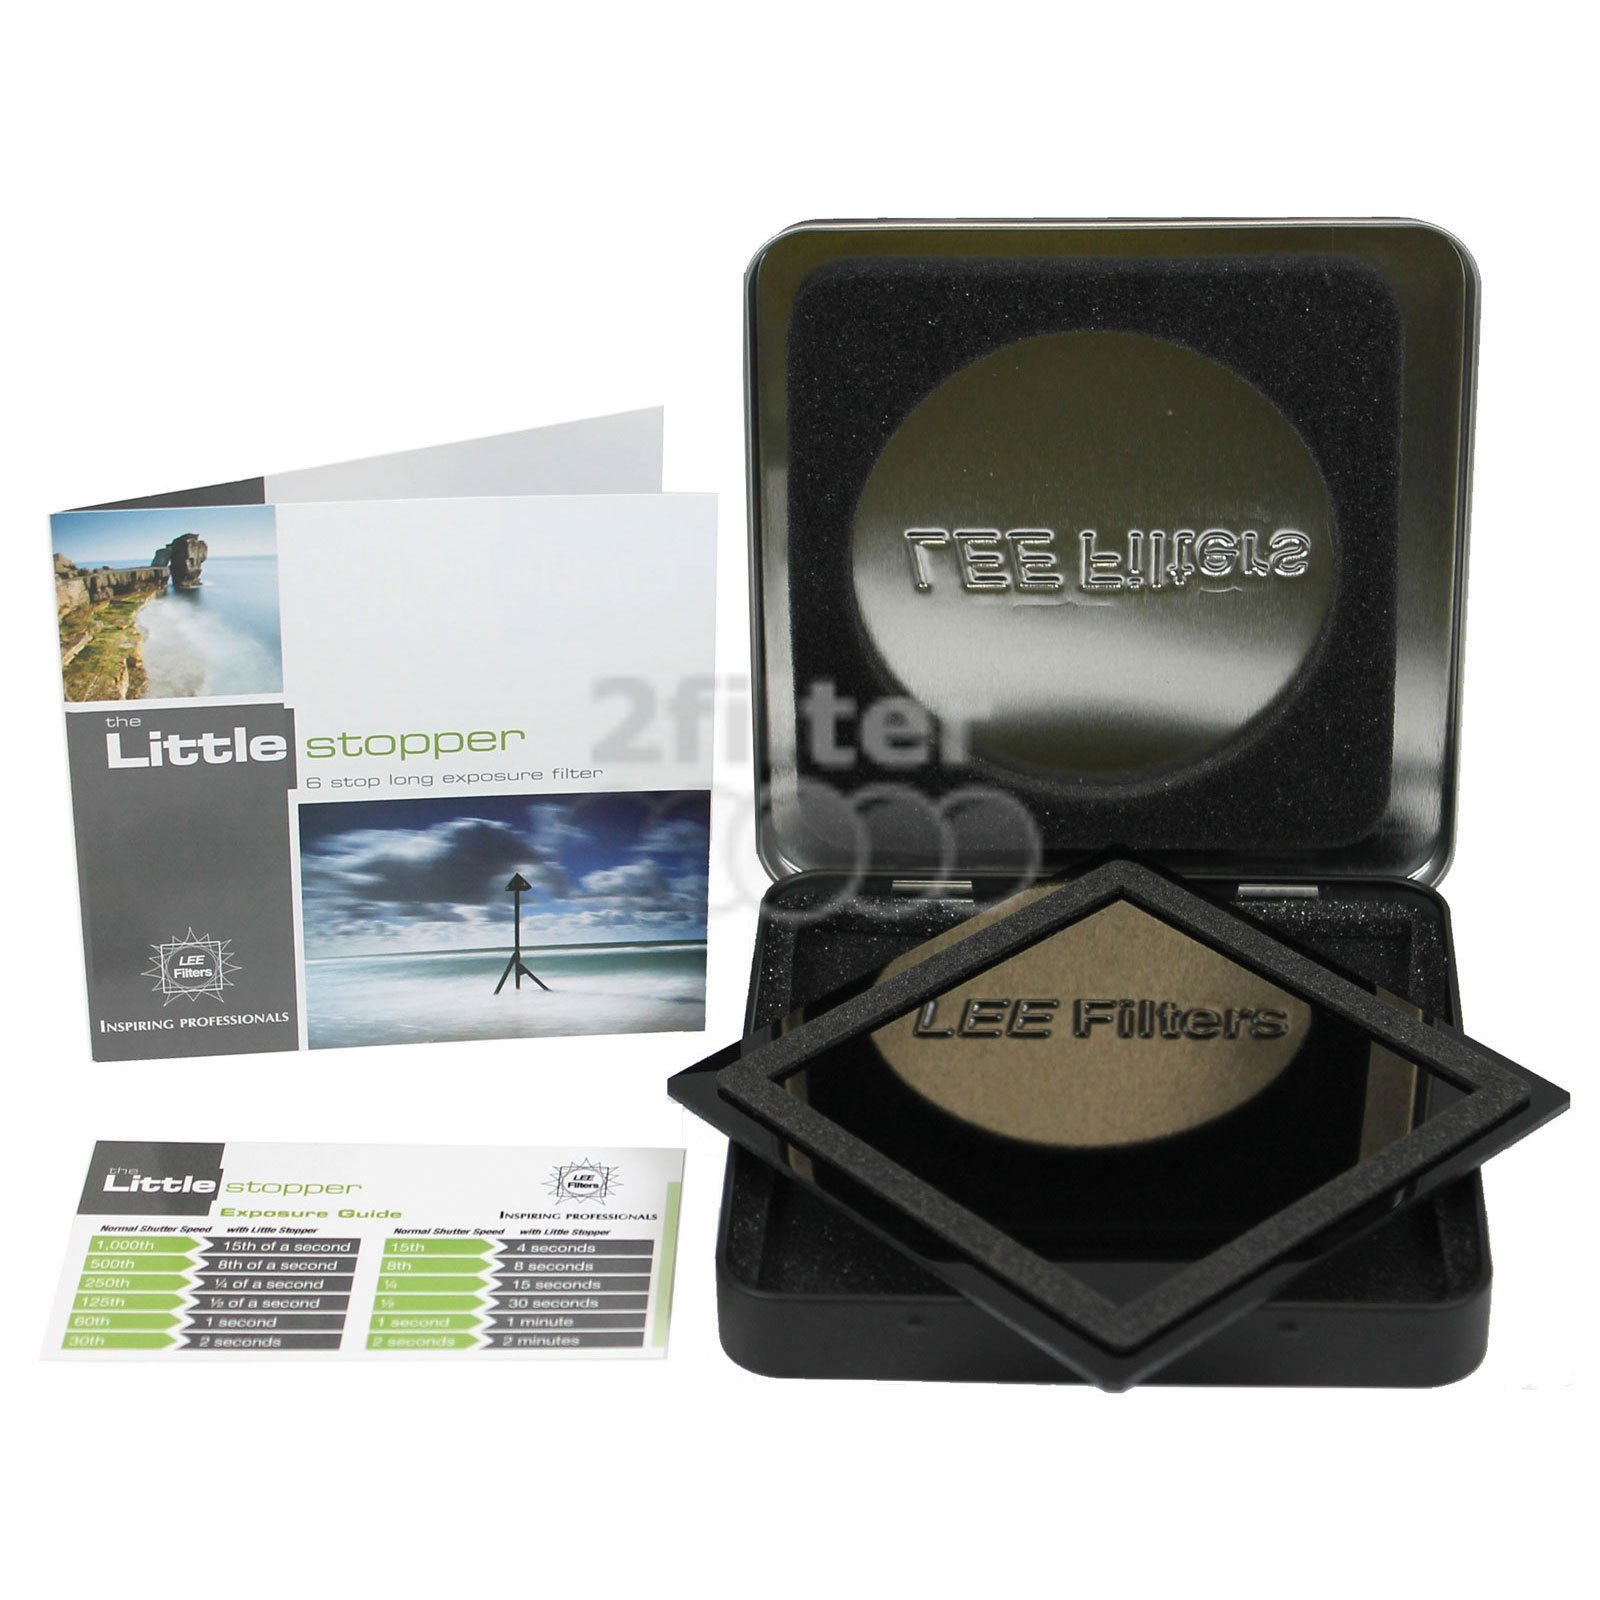 LEE Filters 100mm Big Stopper and 100mm Little Stopper Filters (4x4) with 2filter Cleaning Kit by Lee Filters